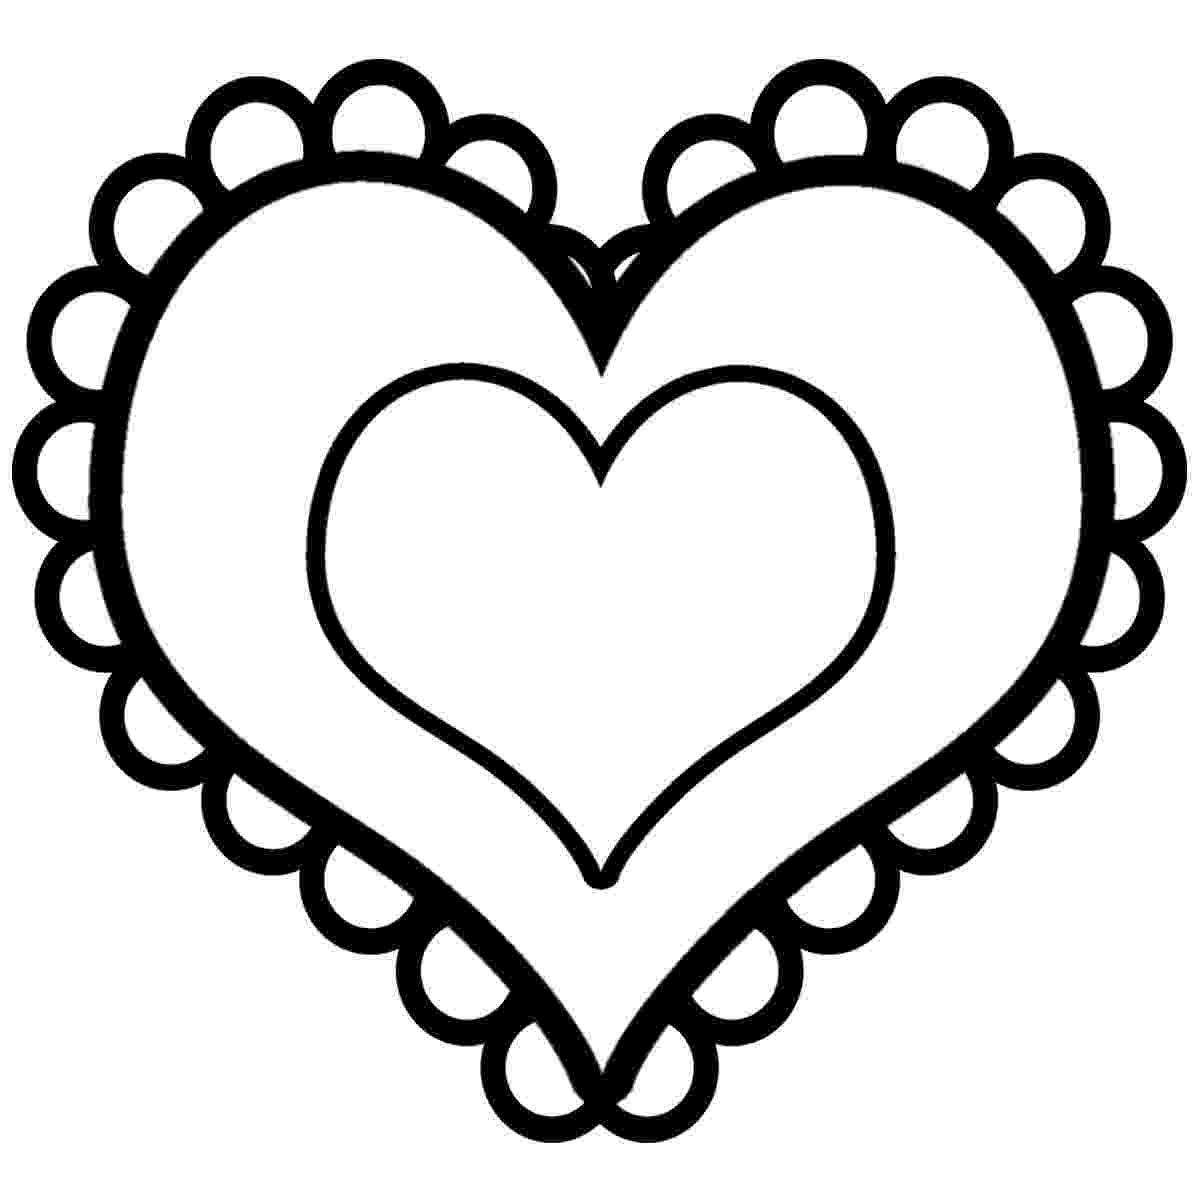 heart printable coloring pages valentine hearts coloring pages free heart printables printable coloring pages heart